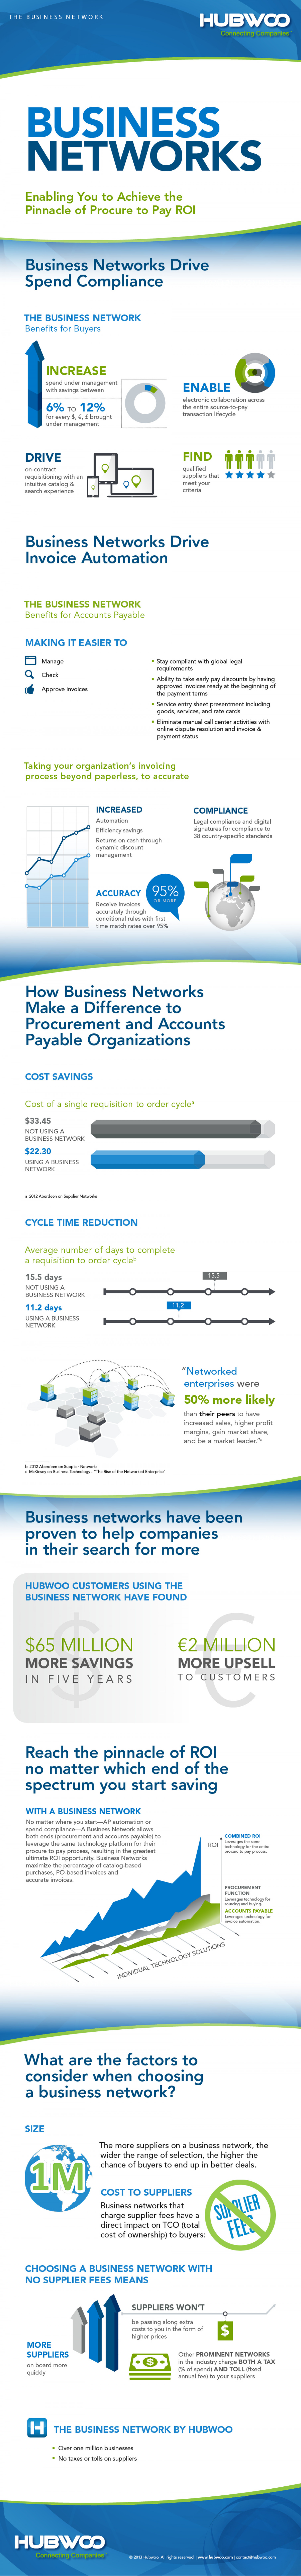 Hubwoo Business Networks Infographic